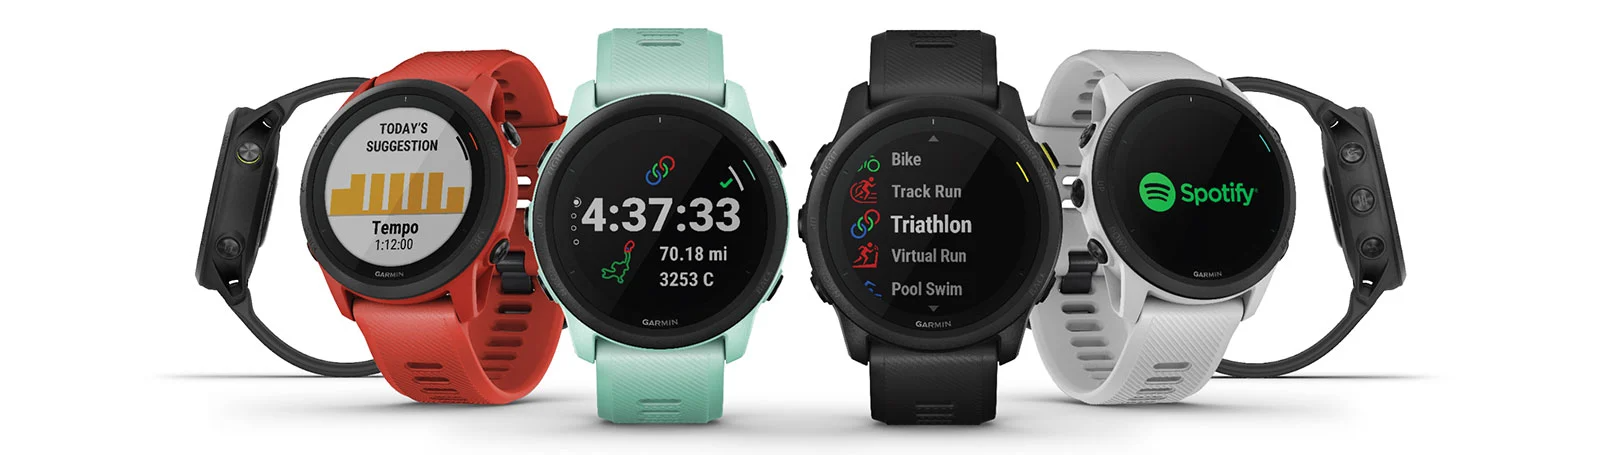 TOP 7 smartwatches and sports bracelets in 2020